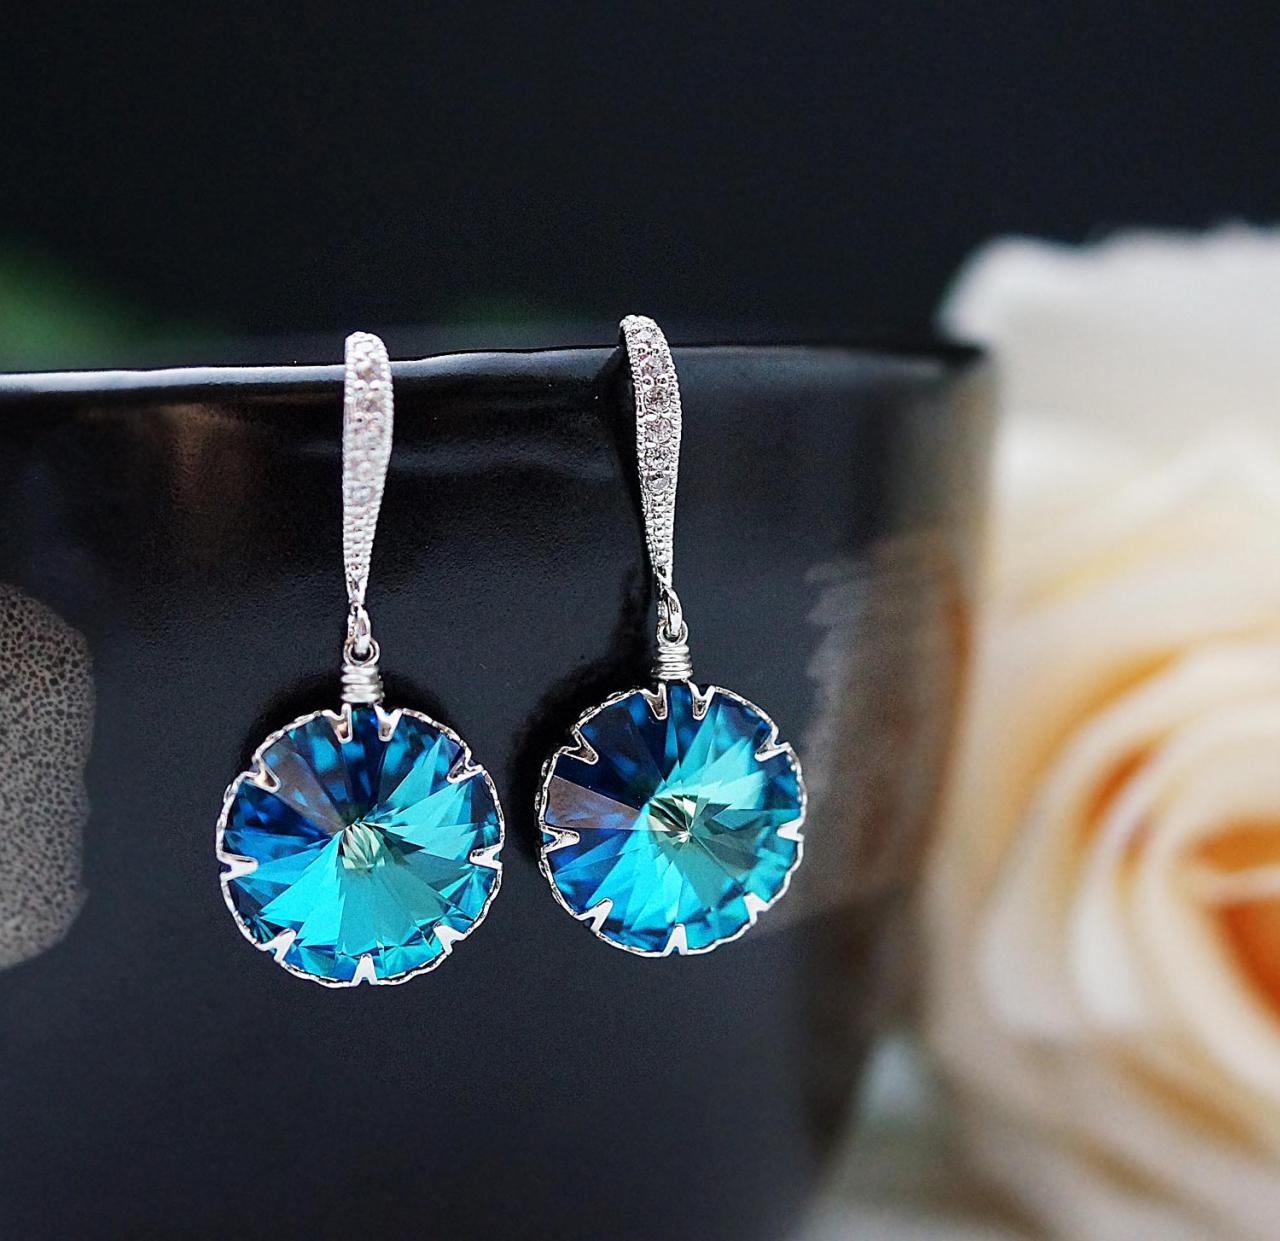 Wedding Jewelry Bridal Jewelry Bridal Earrings Dangle cubic zirconia ear wires and Bermuda Blue Swarovski round Crystal Earrings